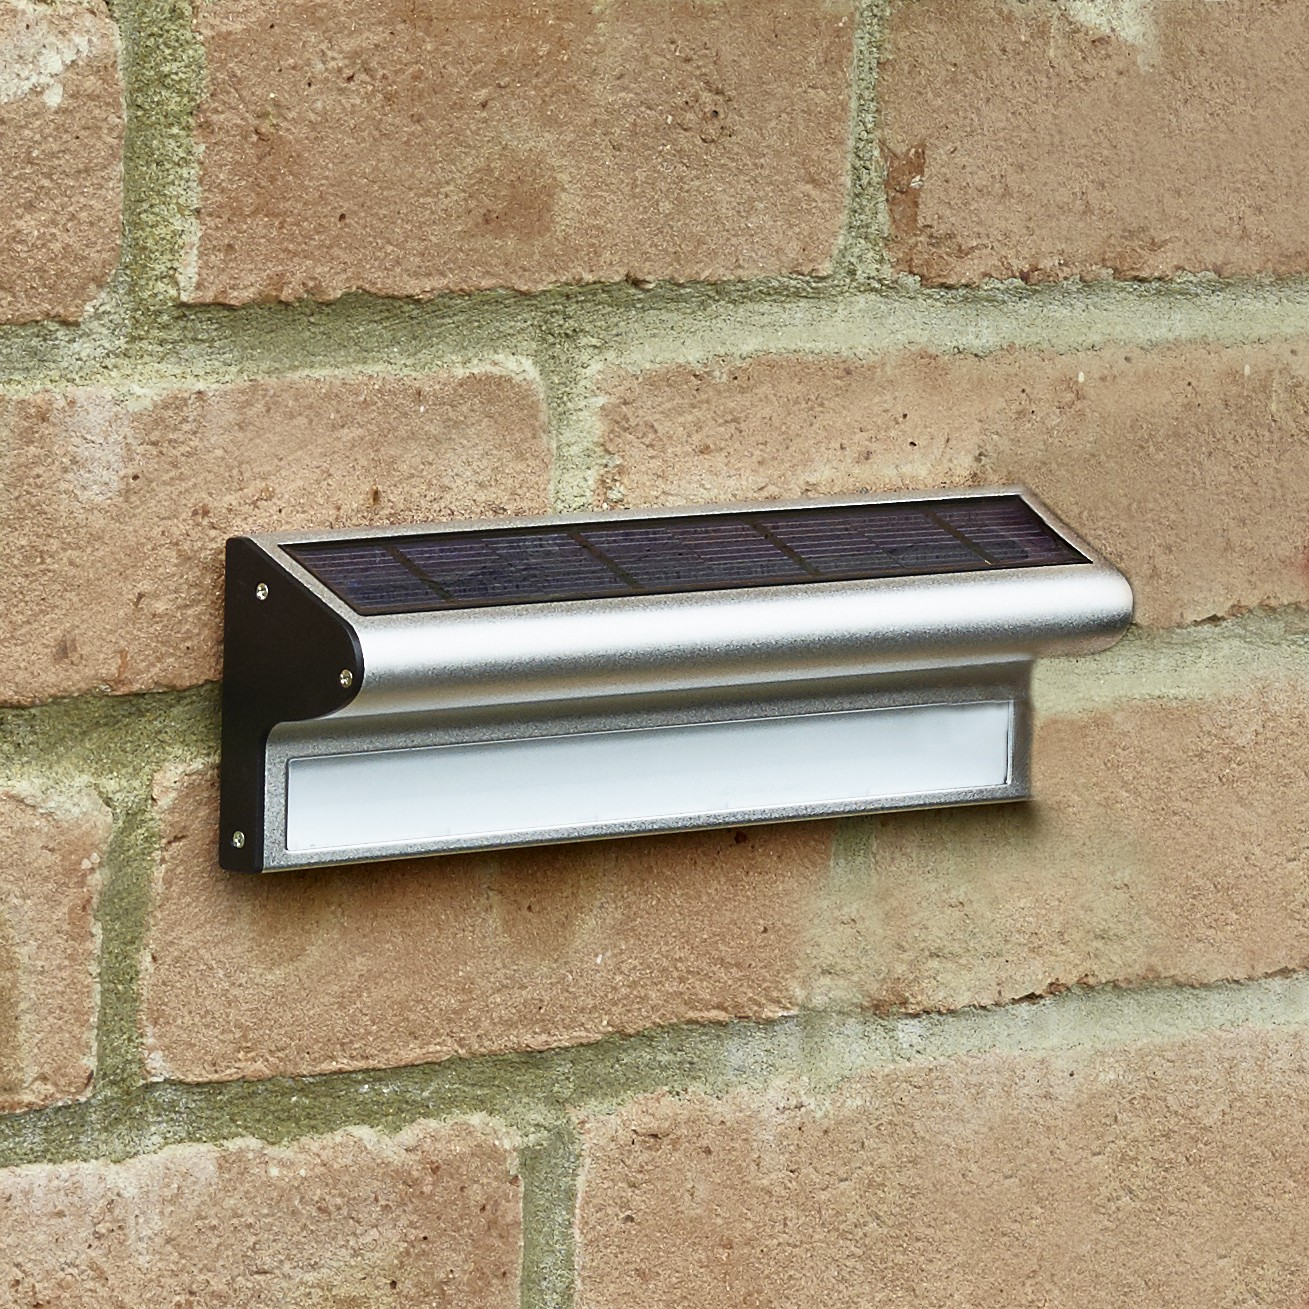 10 Things To Consider Before Installing Solar Led Wall Lights Outdoor